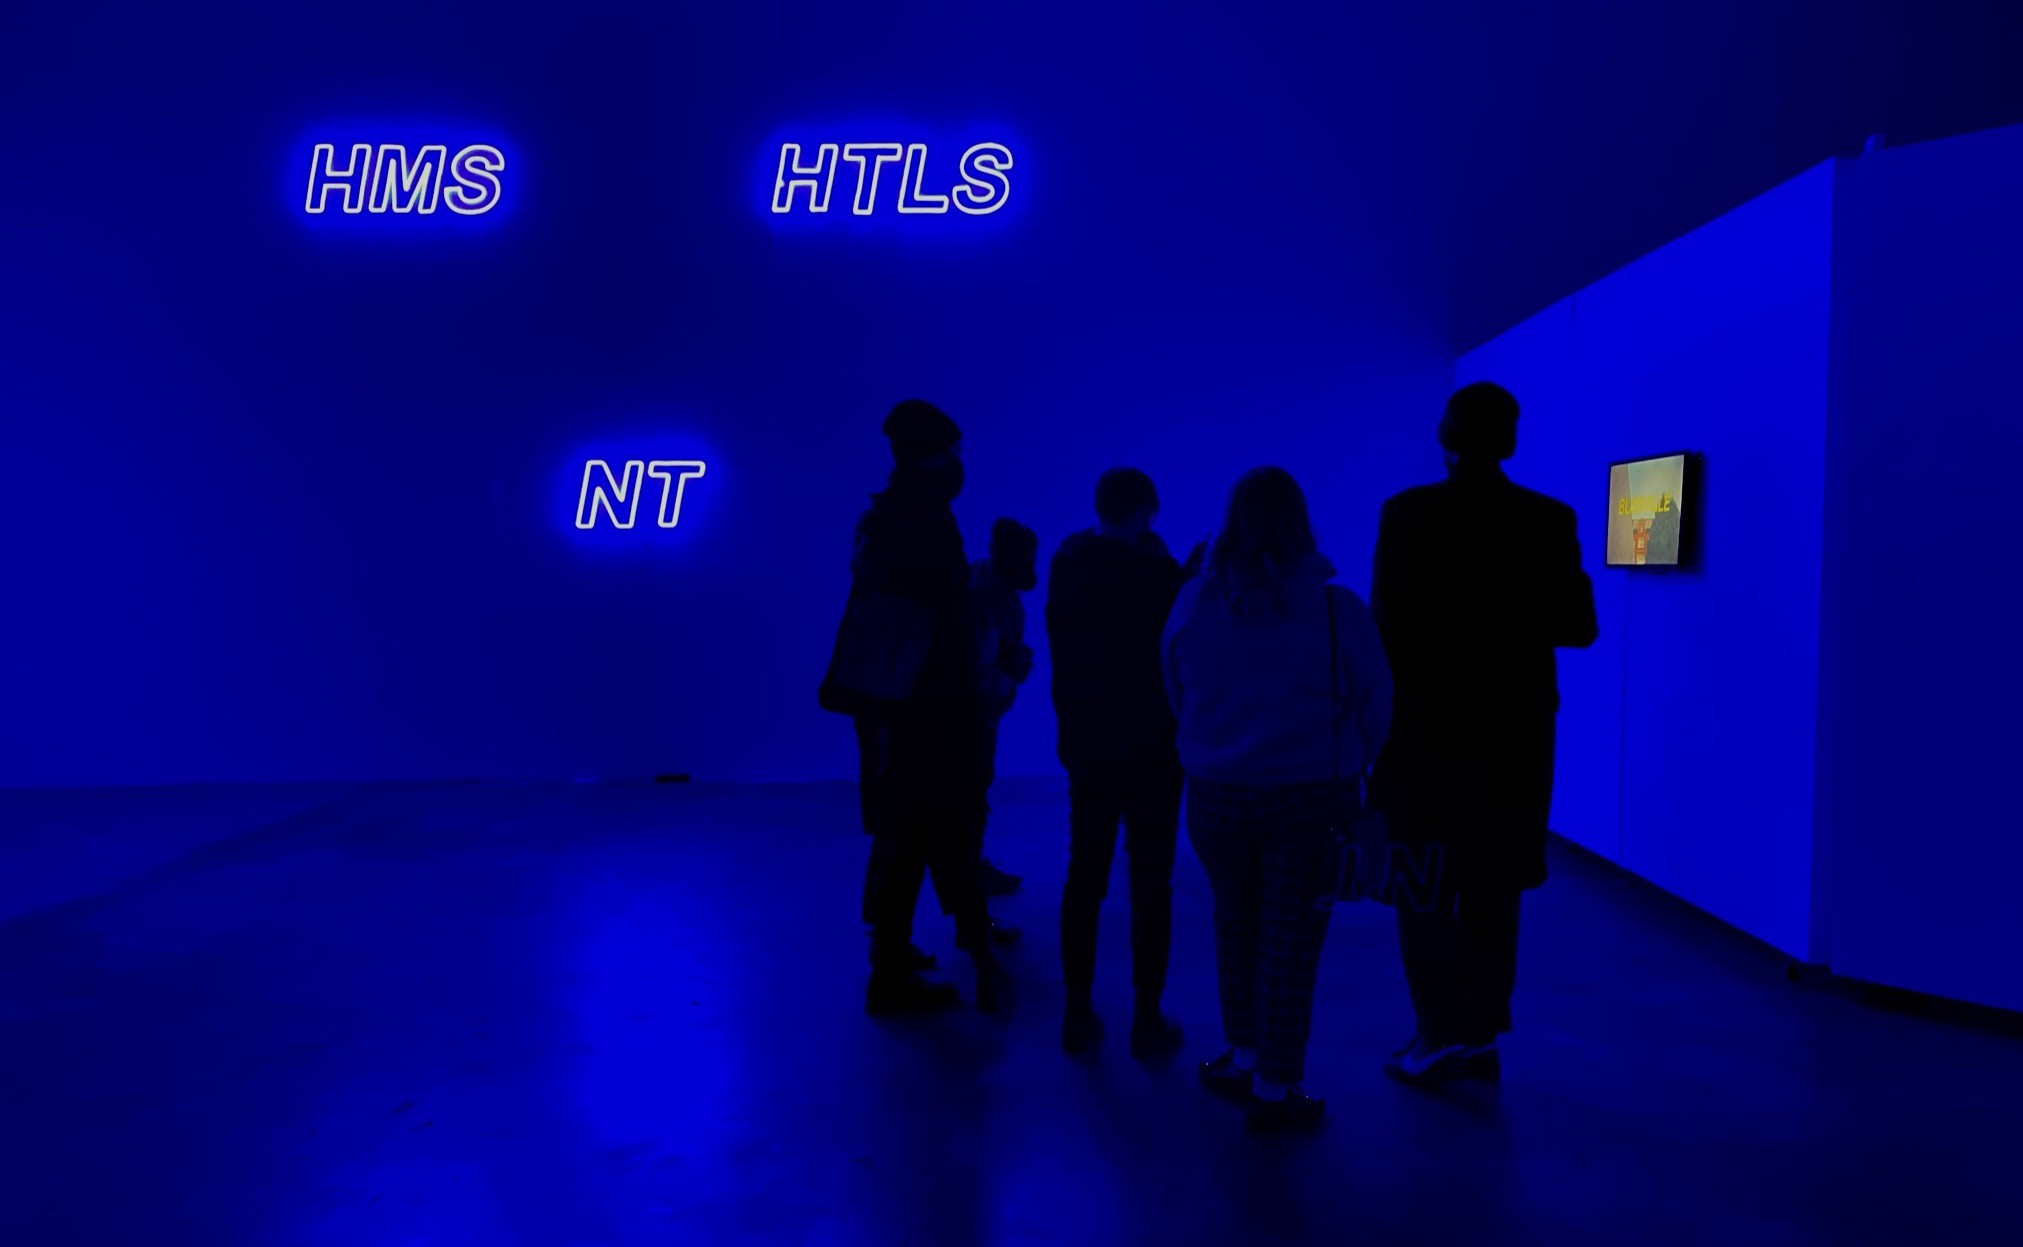 Museum visitors standing in front of a blue neon light installation in the Plaxall Gallery in Long Island City, New York.